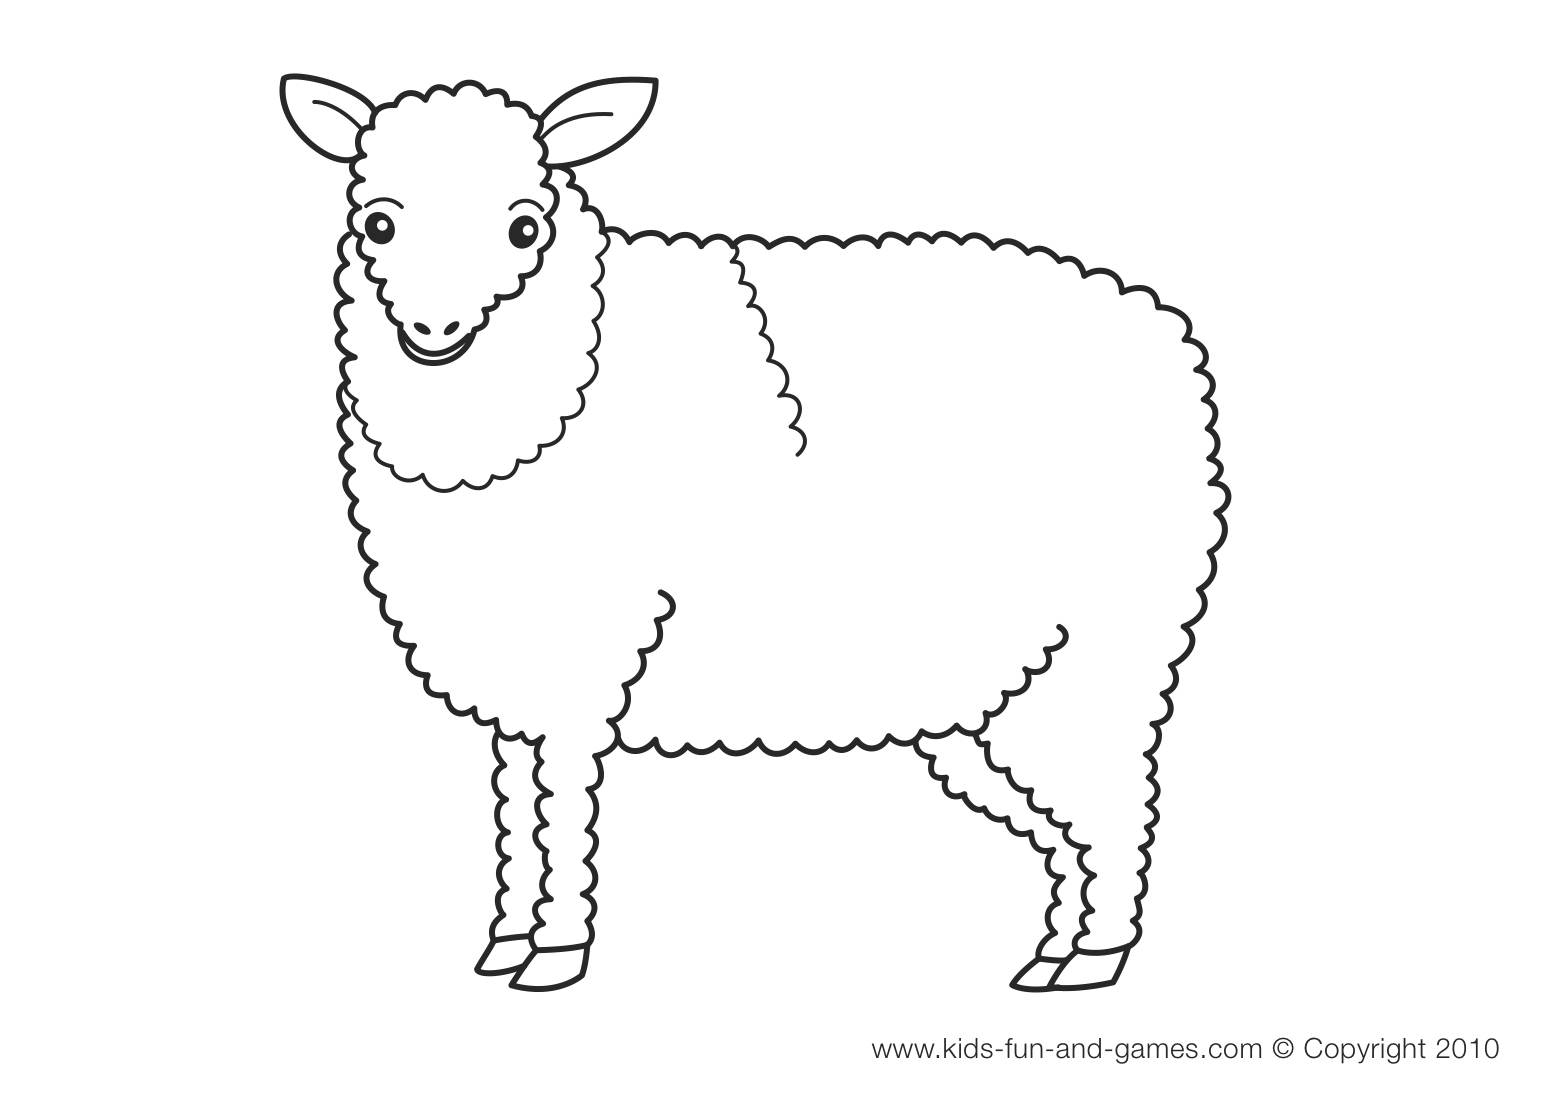 Lamb Coloring Page - Lamb Farm Animals Coloring Pages Coloring Pages